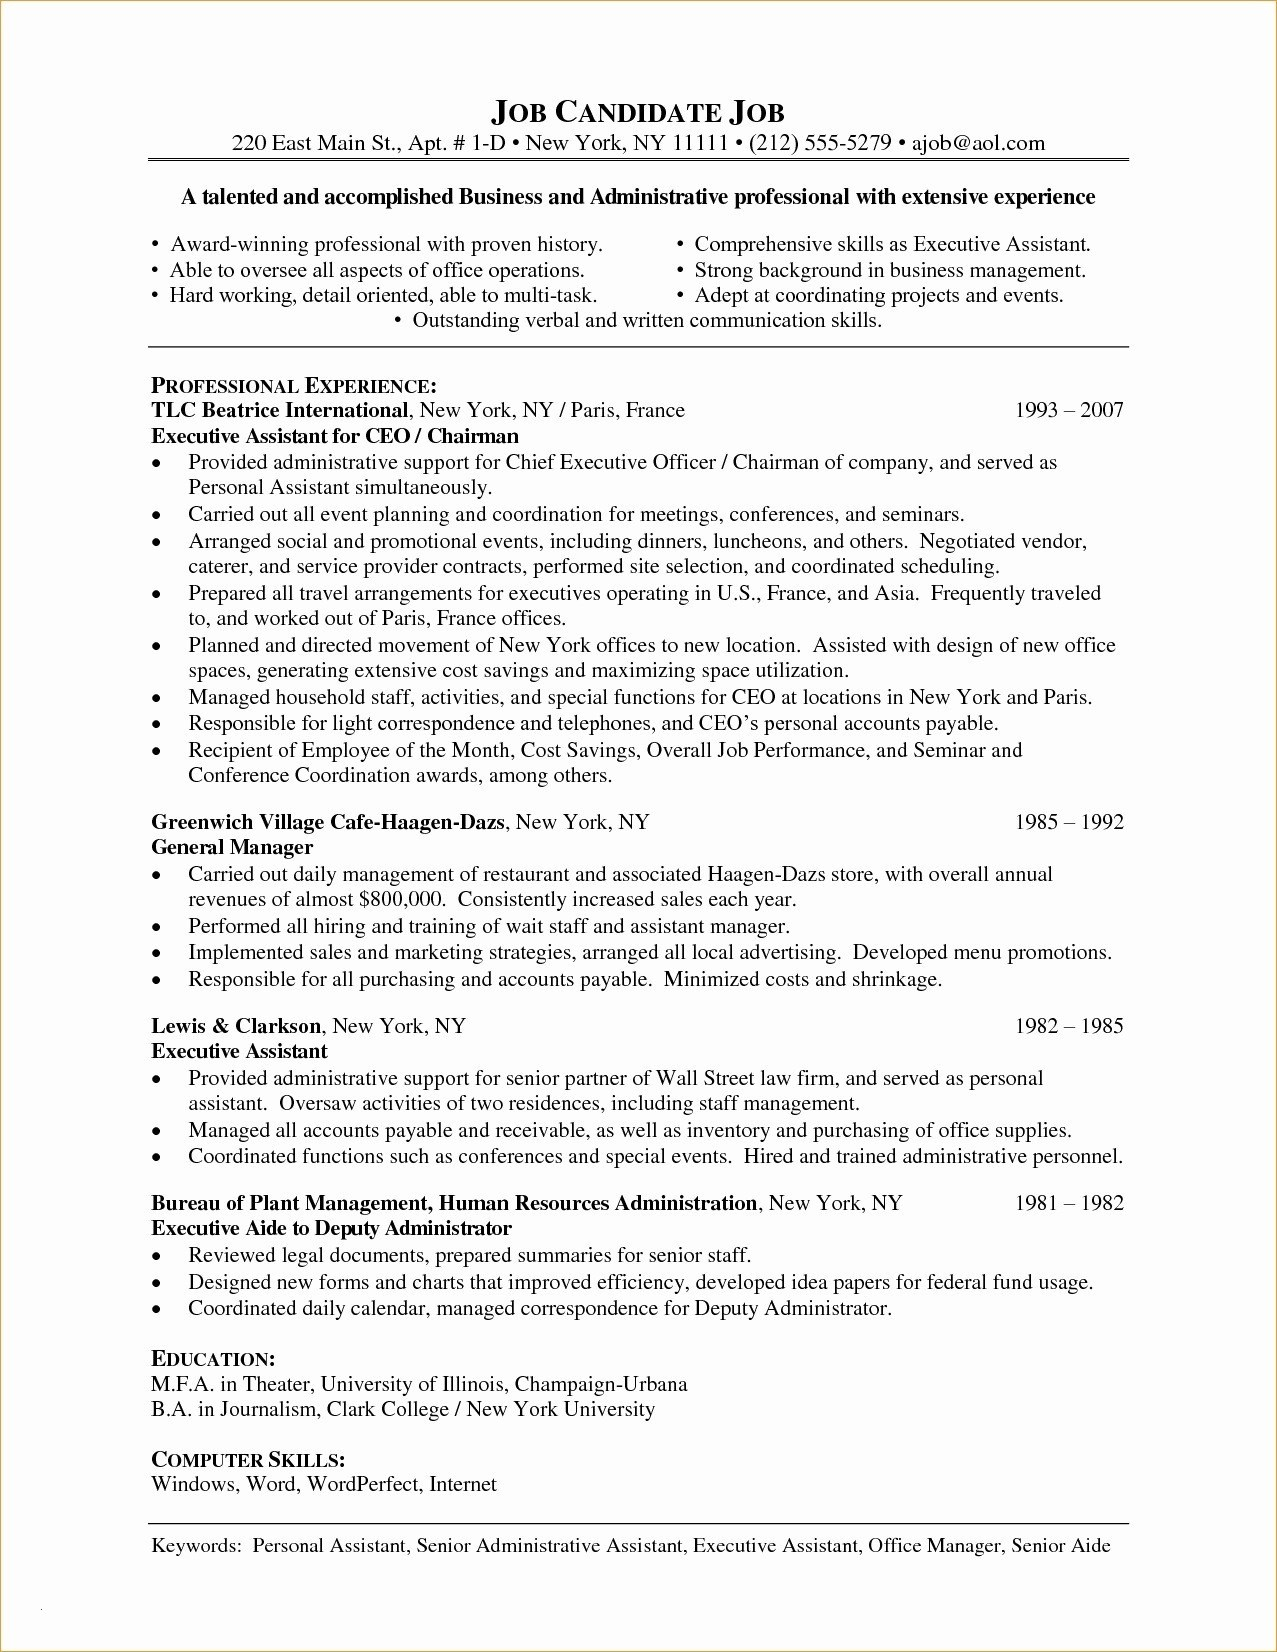 Resume for Dental Office Manager - 21 Dental Fice Manager Resume